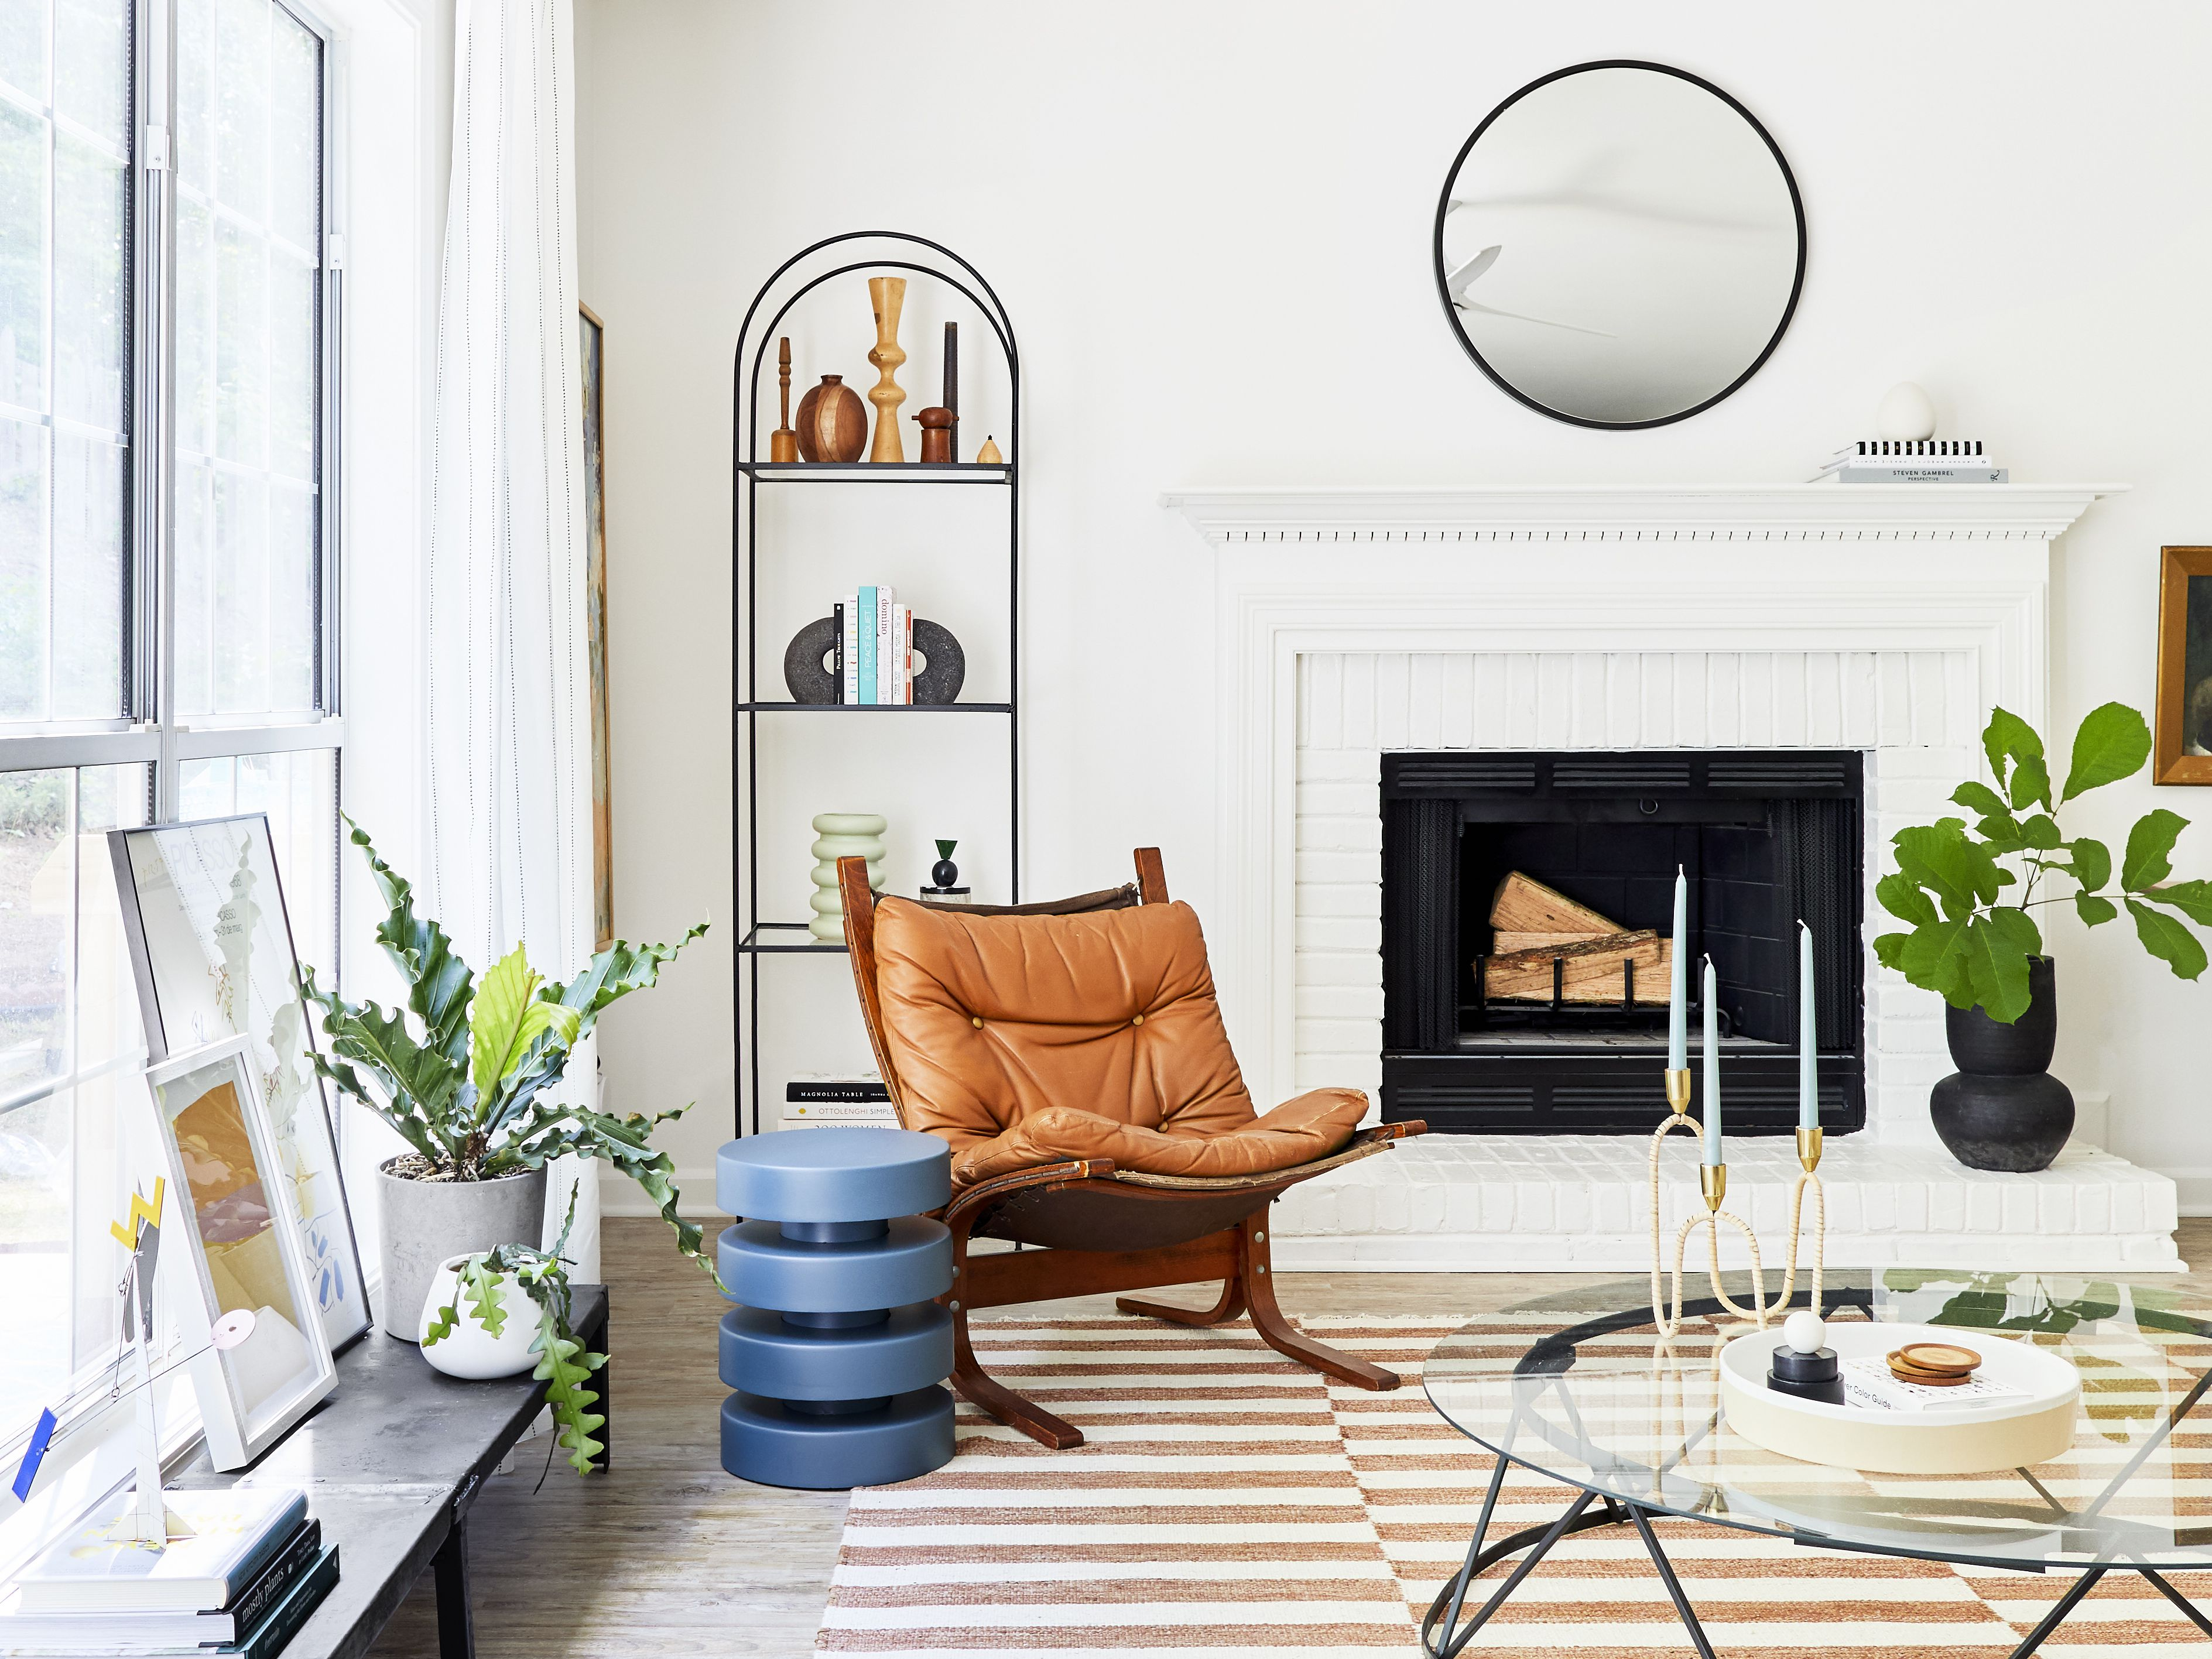 Here's Where to Shop Online to Score a Cheap Rug That Looks Luxe